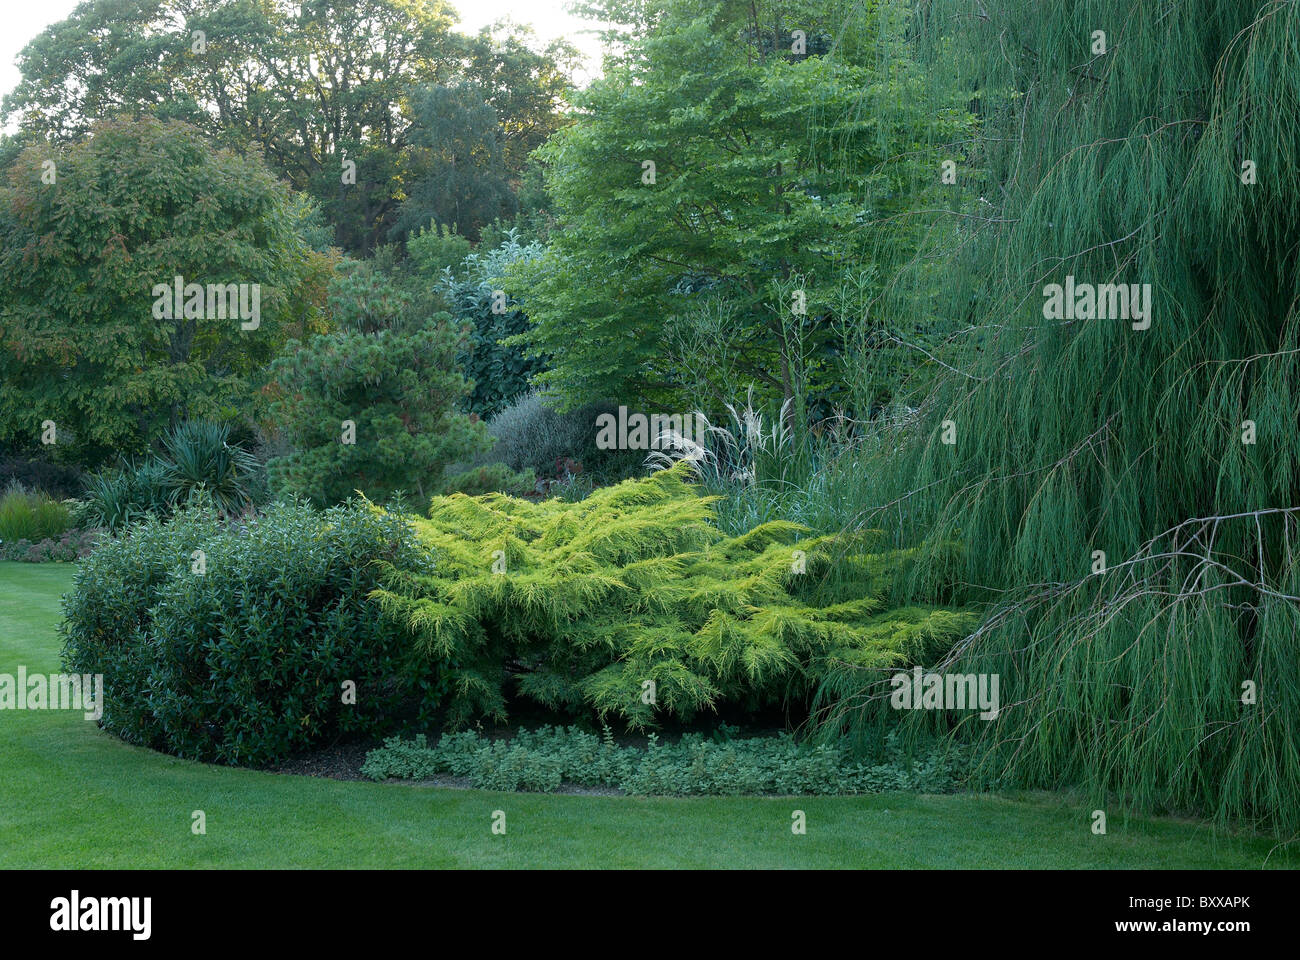 Evergreen trees and shrubs at rhs rosemoor devon uk - Stock Image